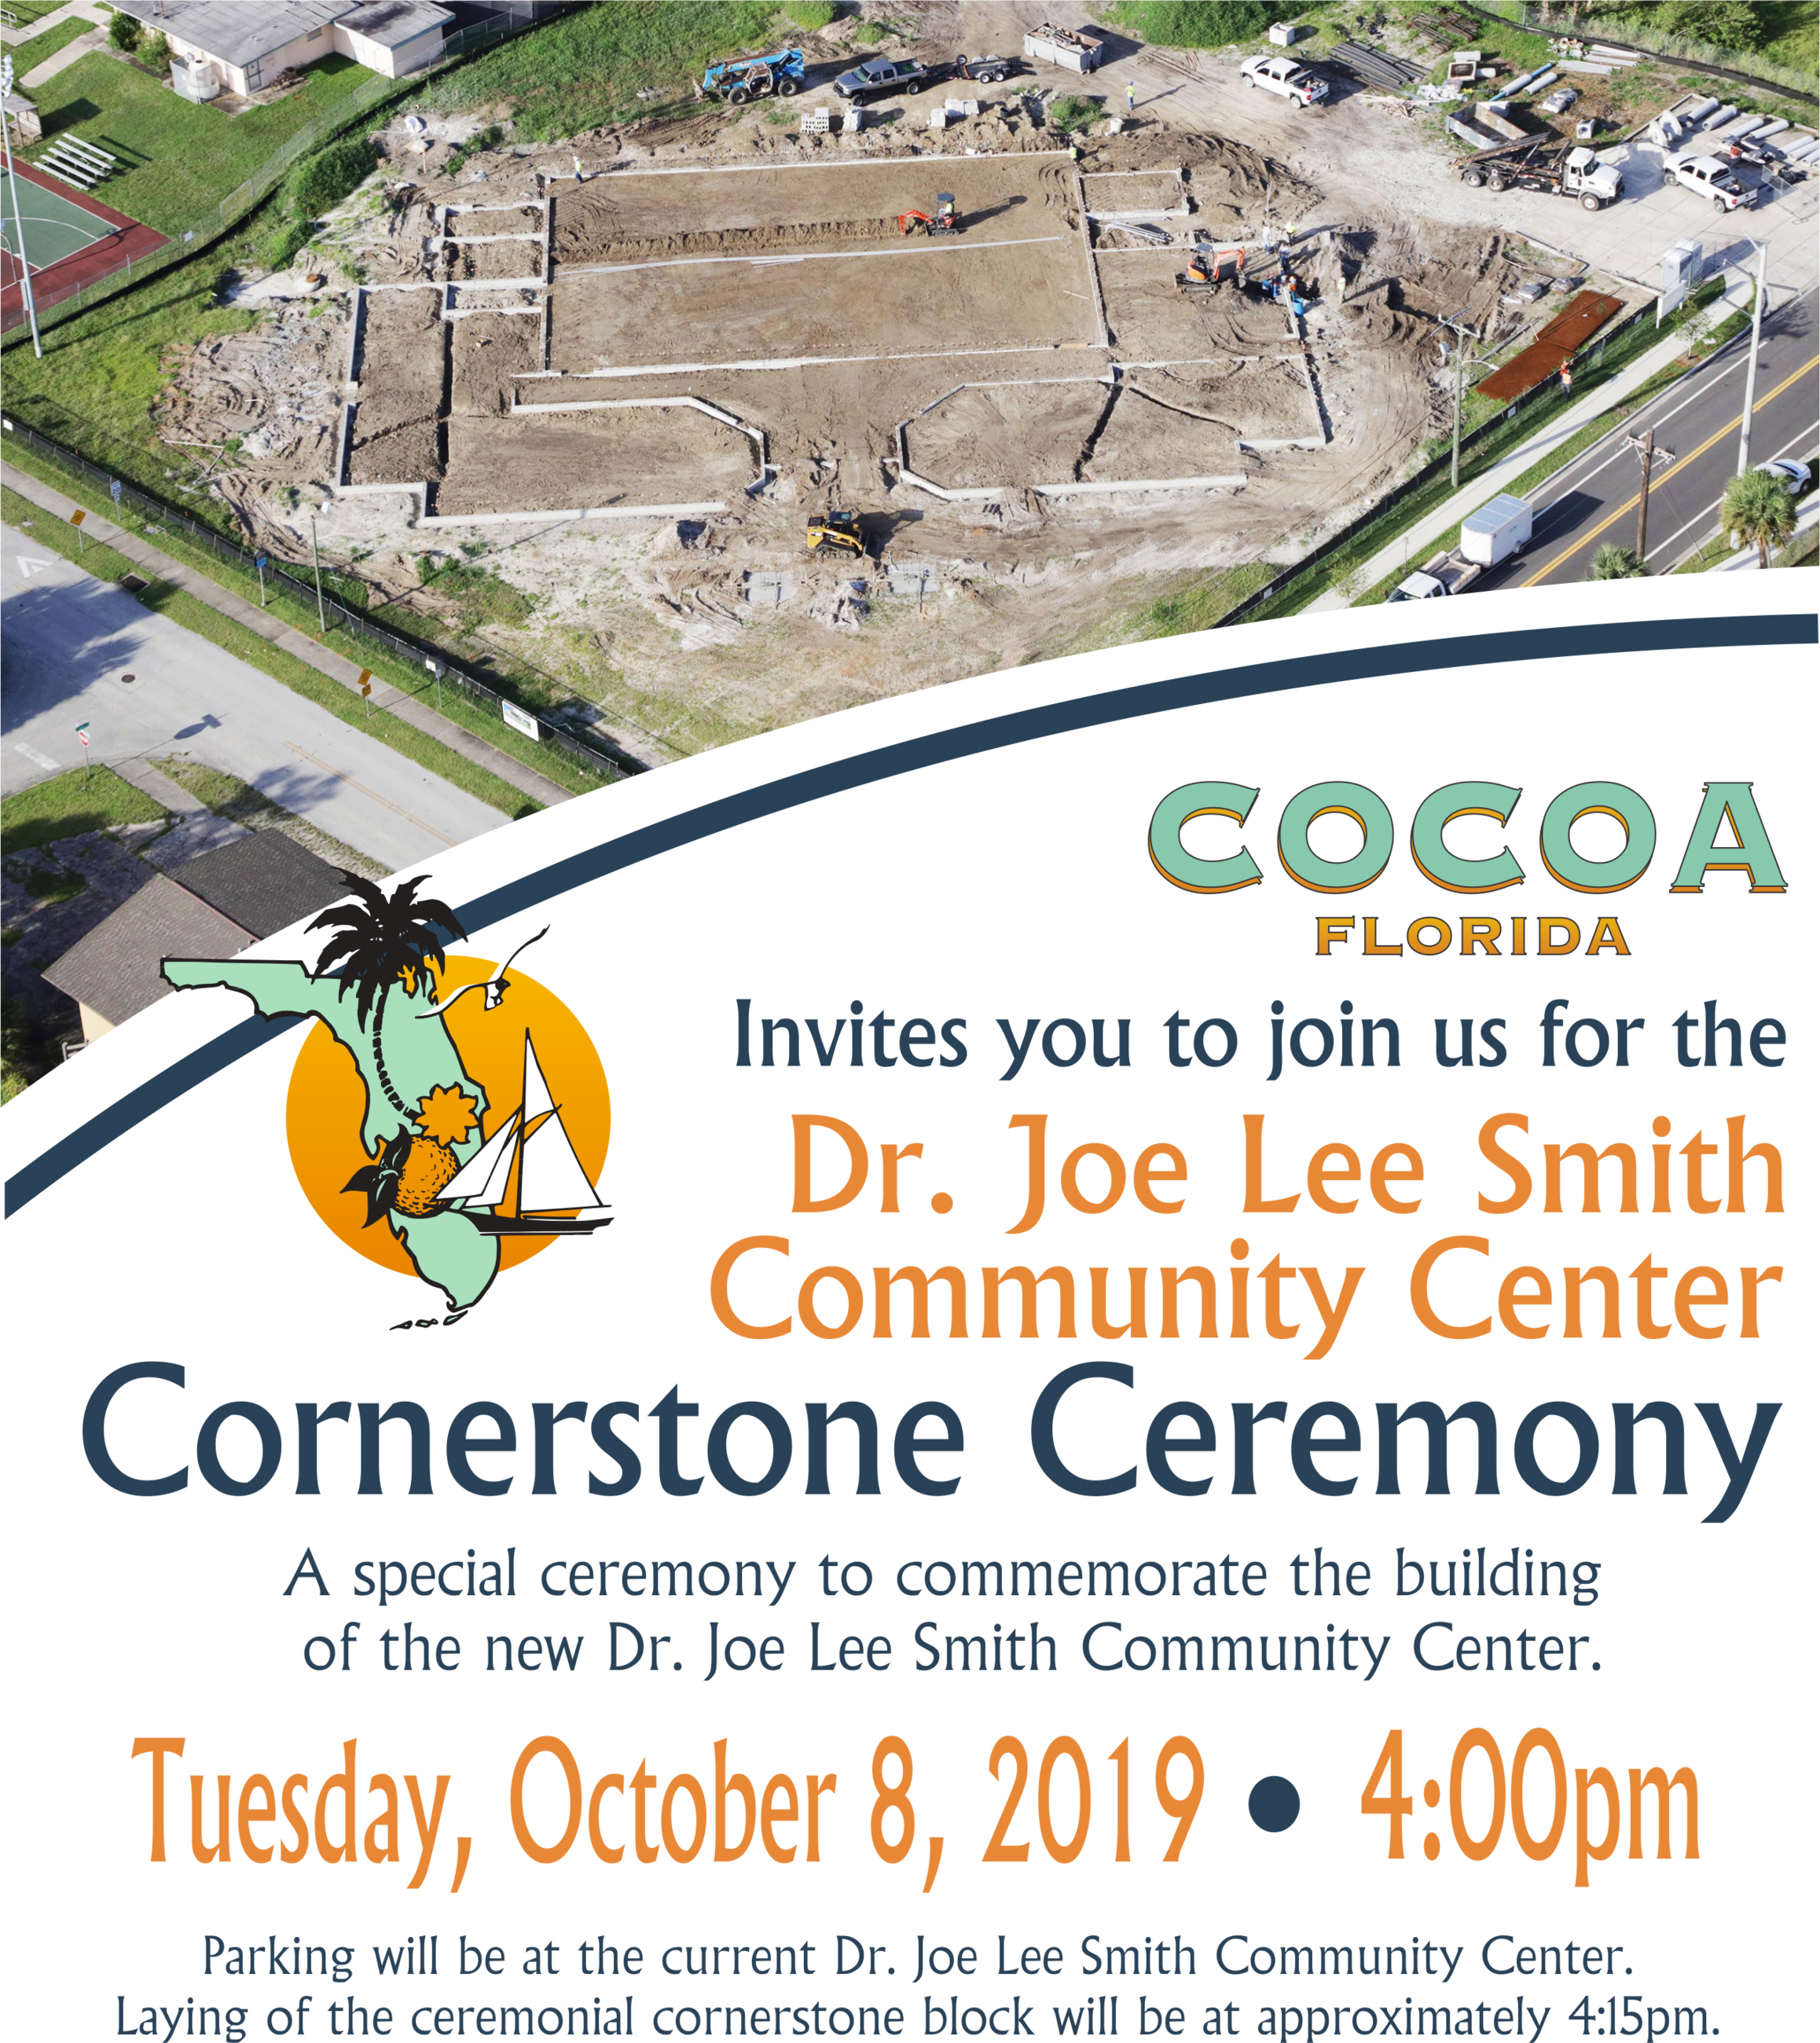 Cocoa Florida invites you to join us for the Dr. Joe Lee Smith Community Center Cornerstone Ceremony